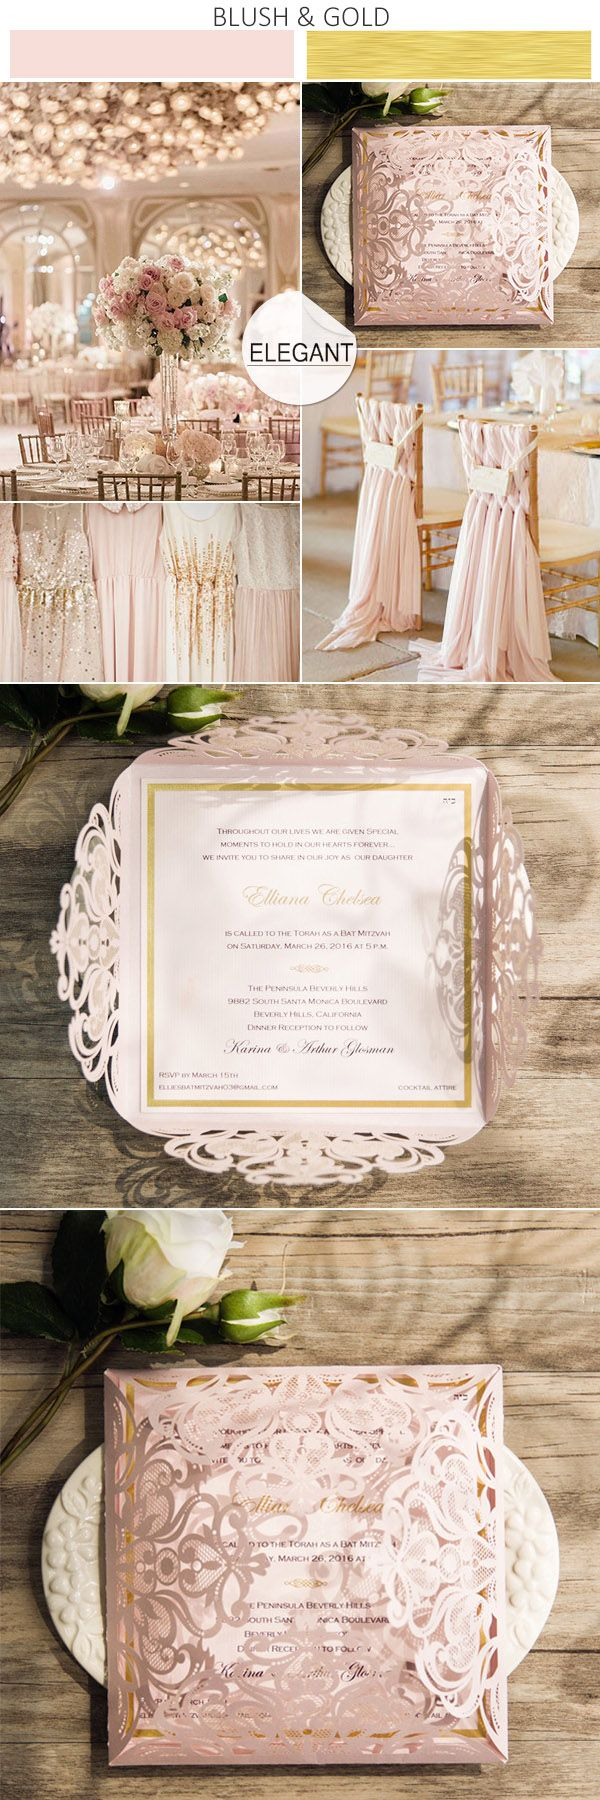 sample of wedding invitation letter%0A blush pink and gold wedding colors inspired laser cut wedding invitations